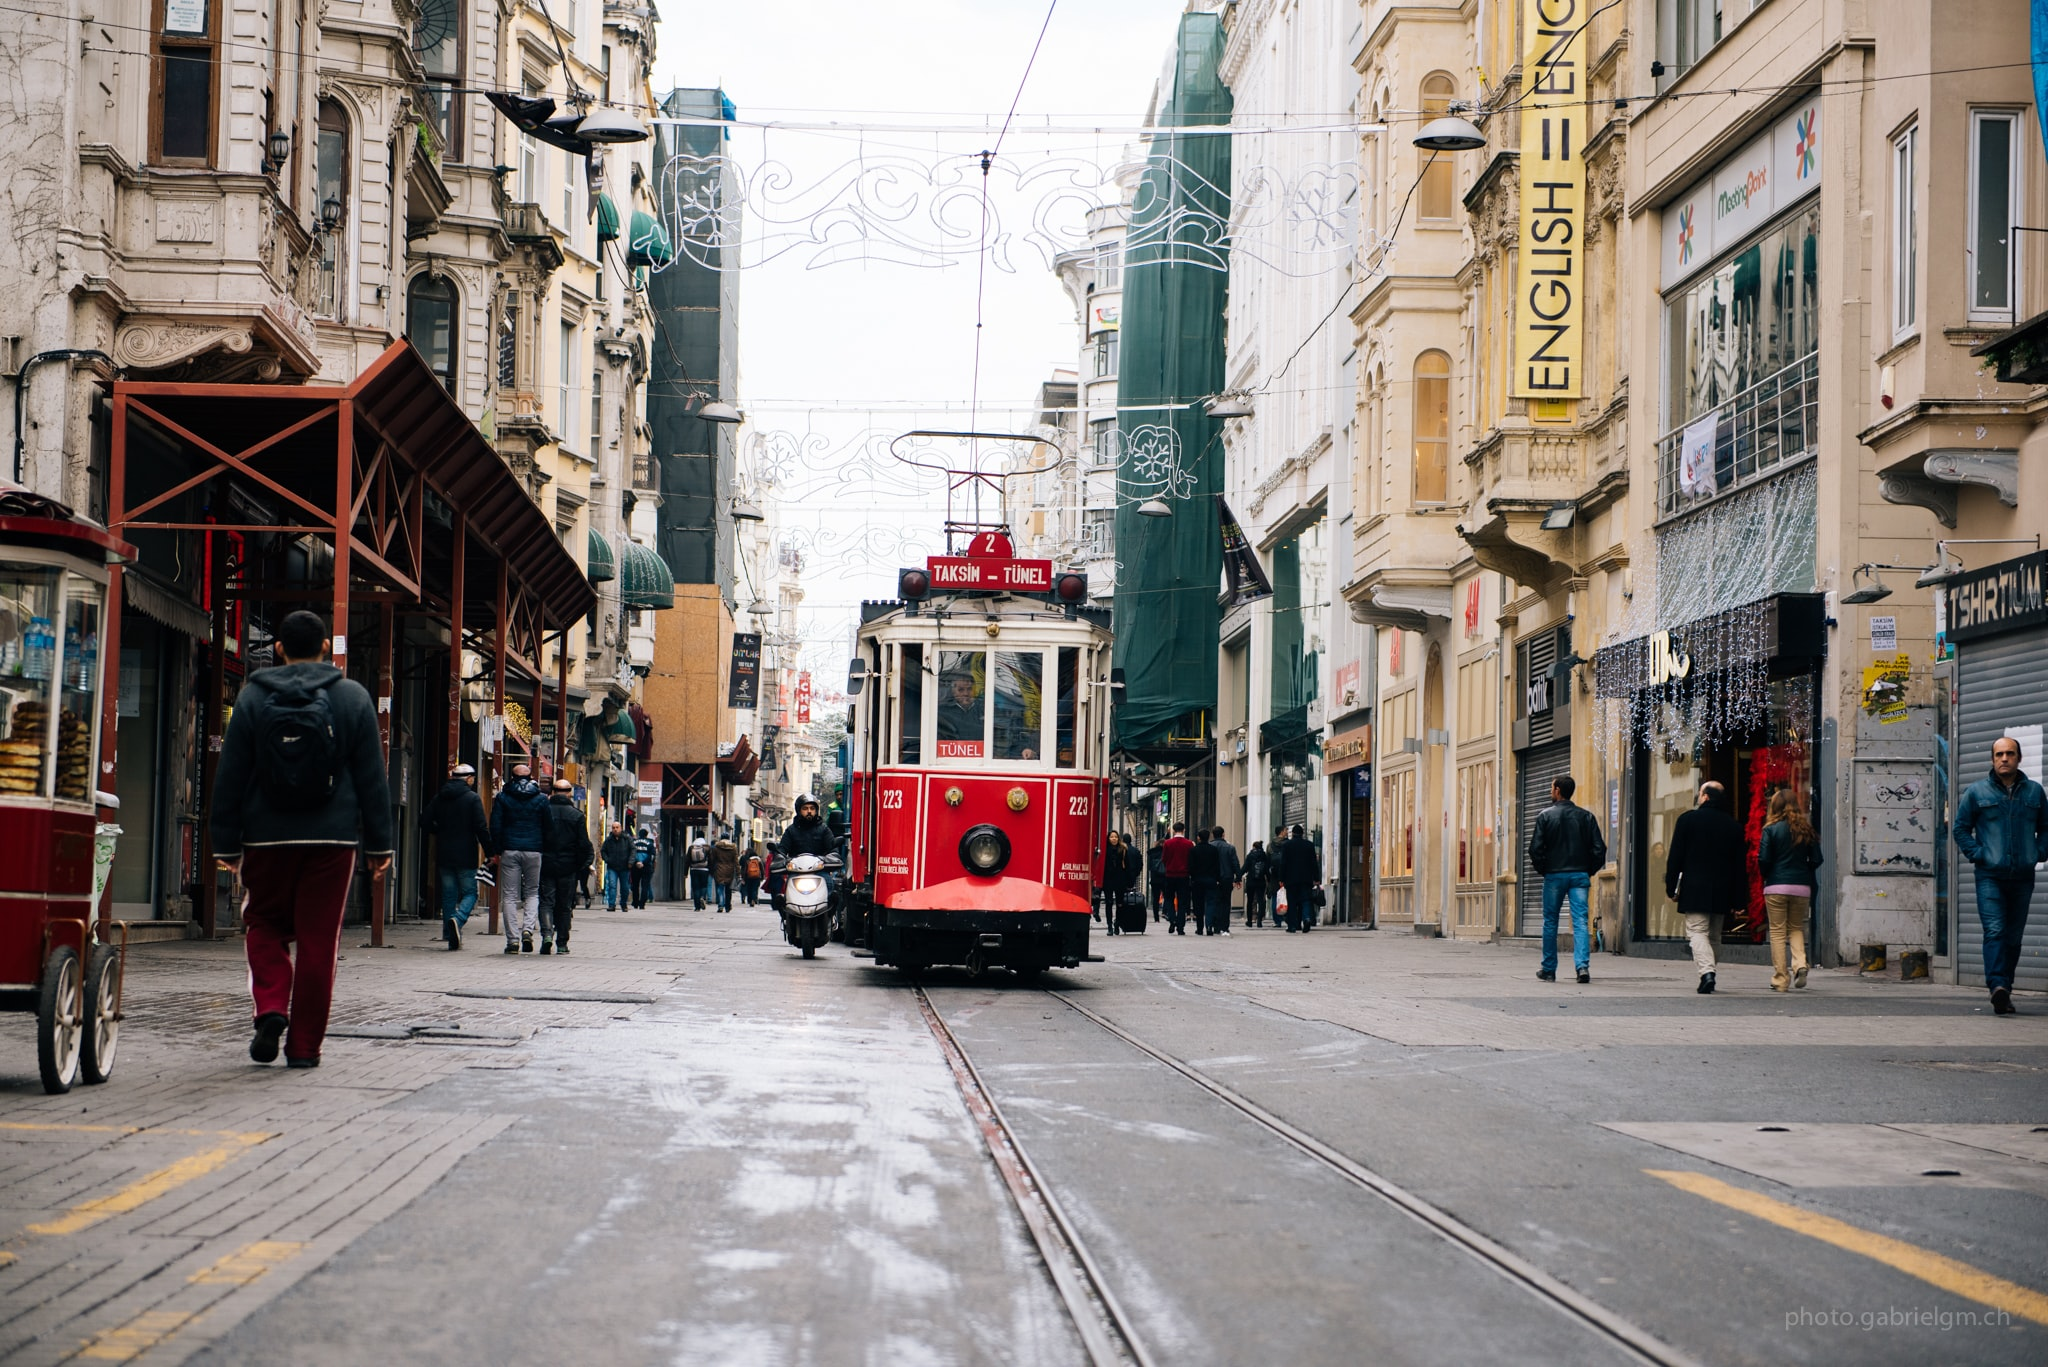 Red cable car in road with people and buildings on either side